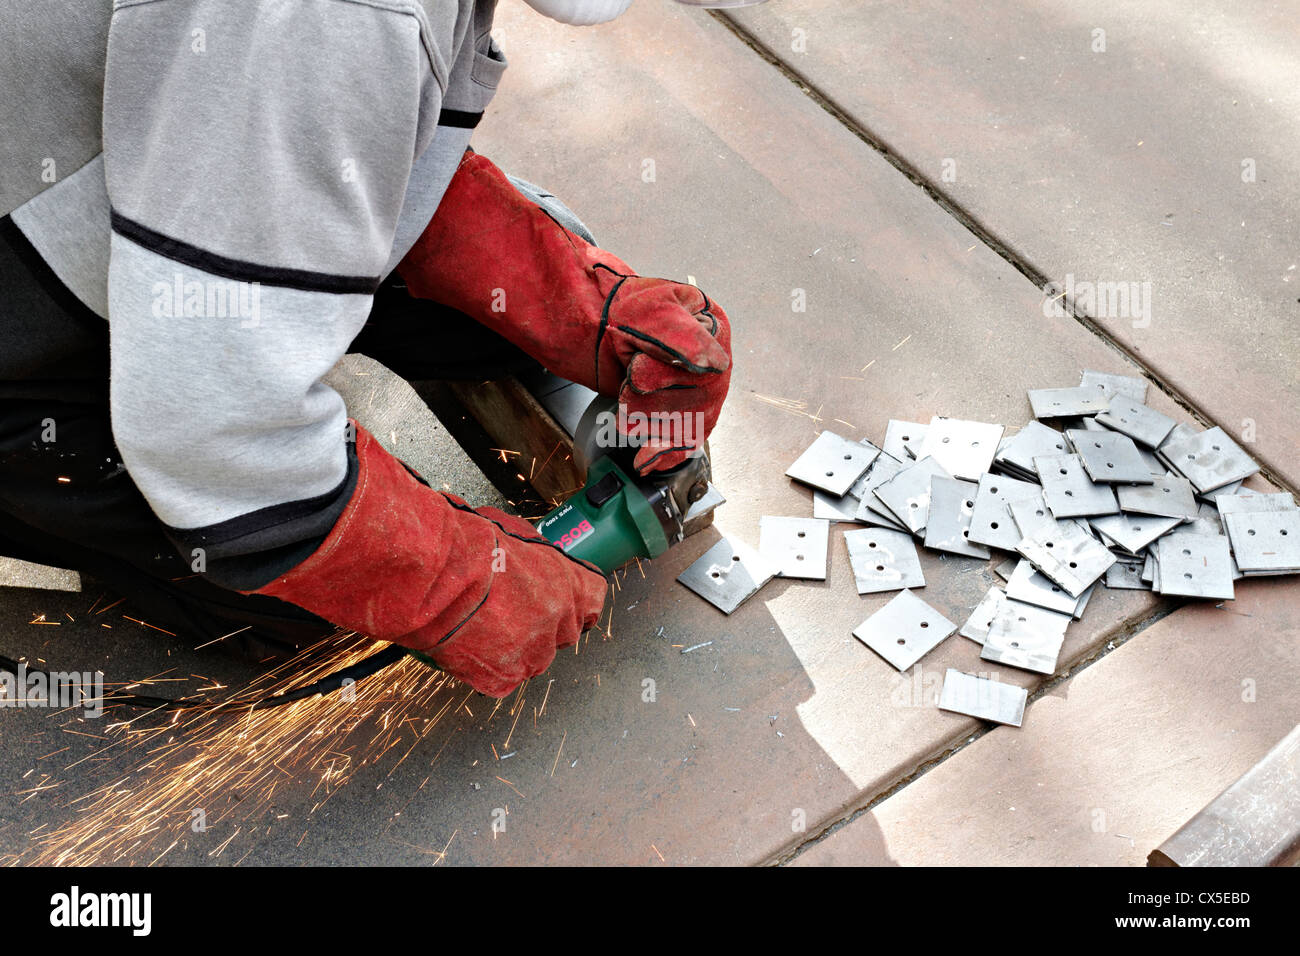 Man cutting metal with a angle grinder - Stock Image